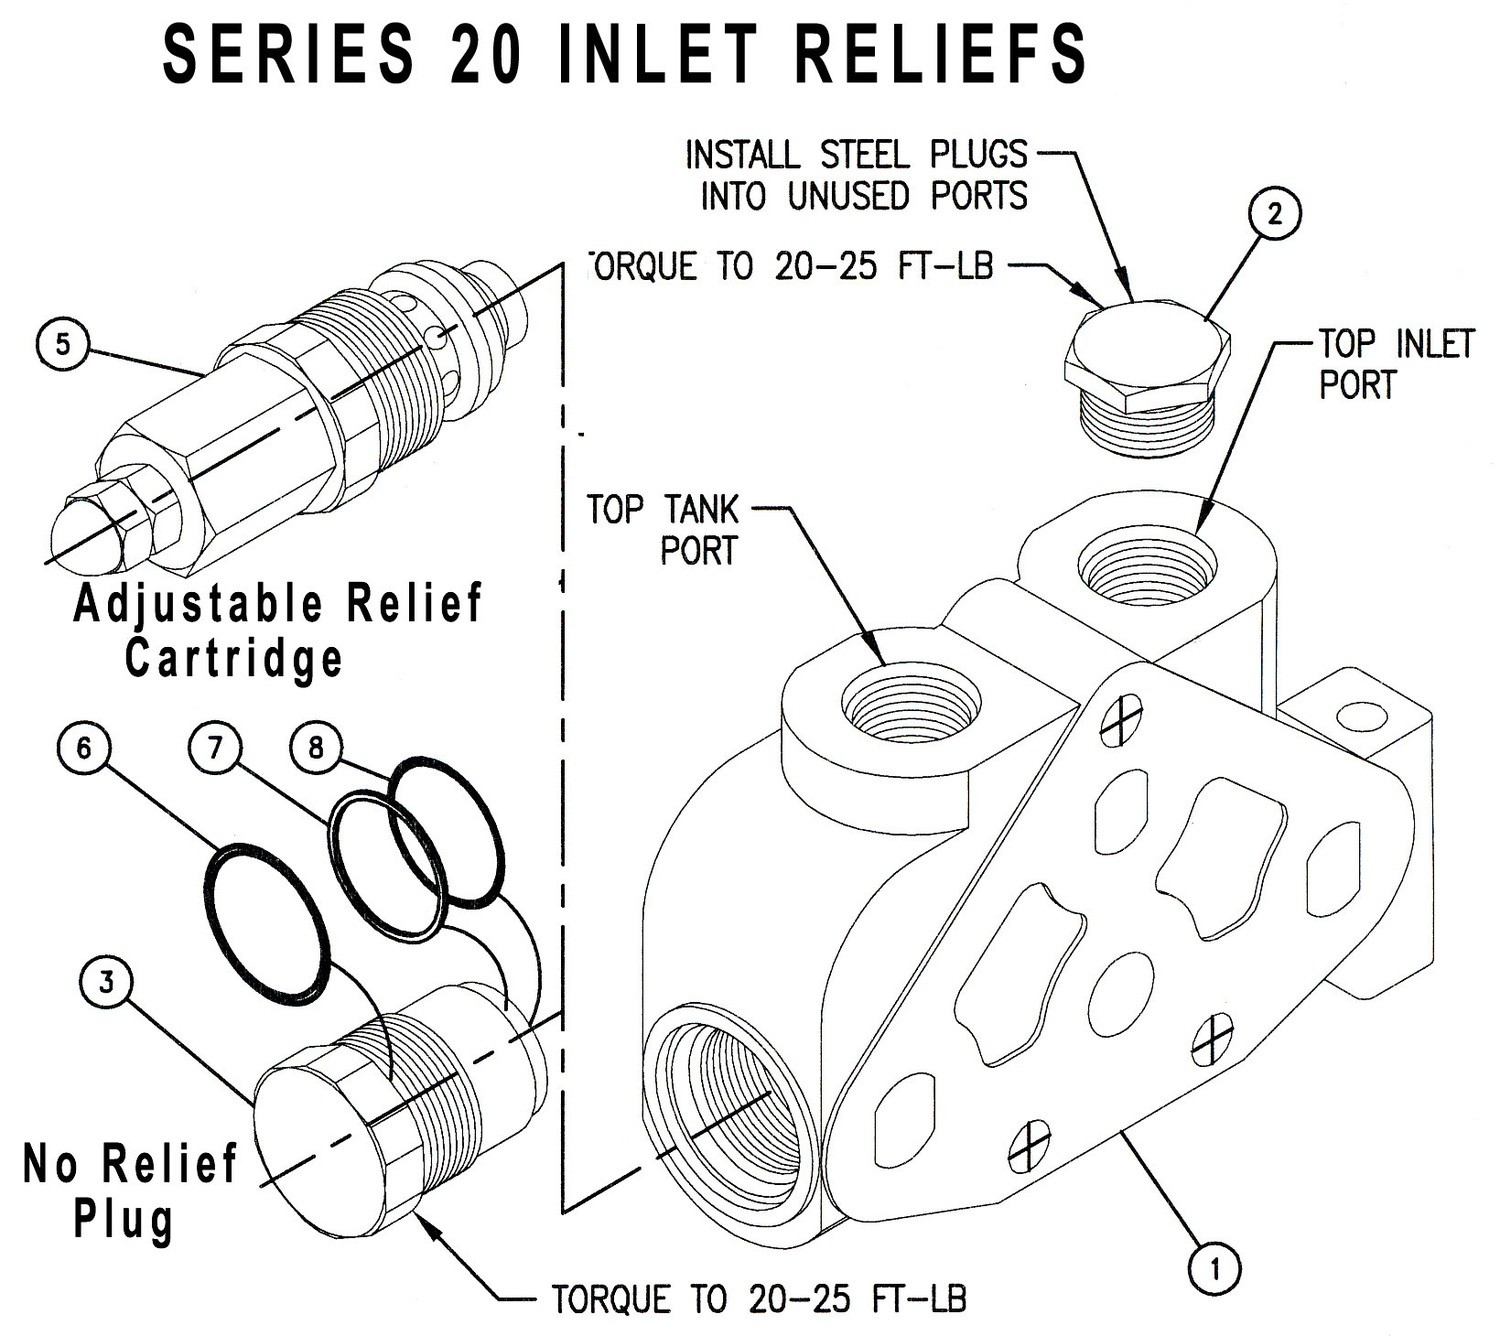 660290203 - INLET RELIEF CARTRIDGE - 1350-1750